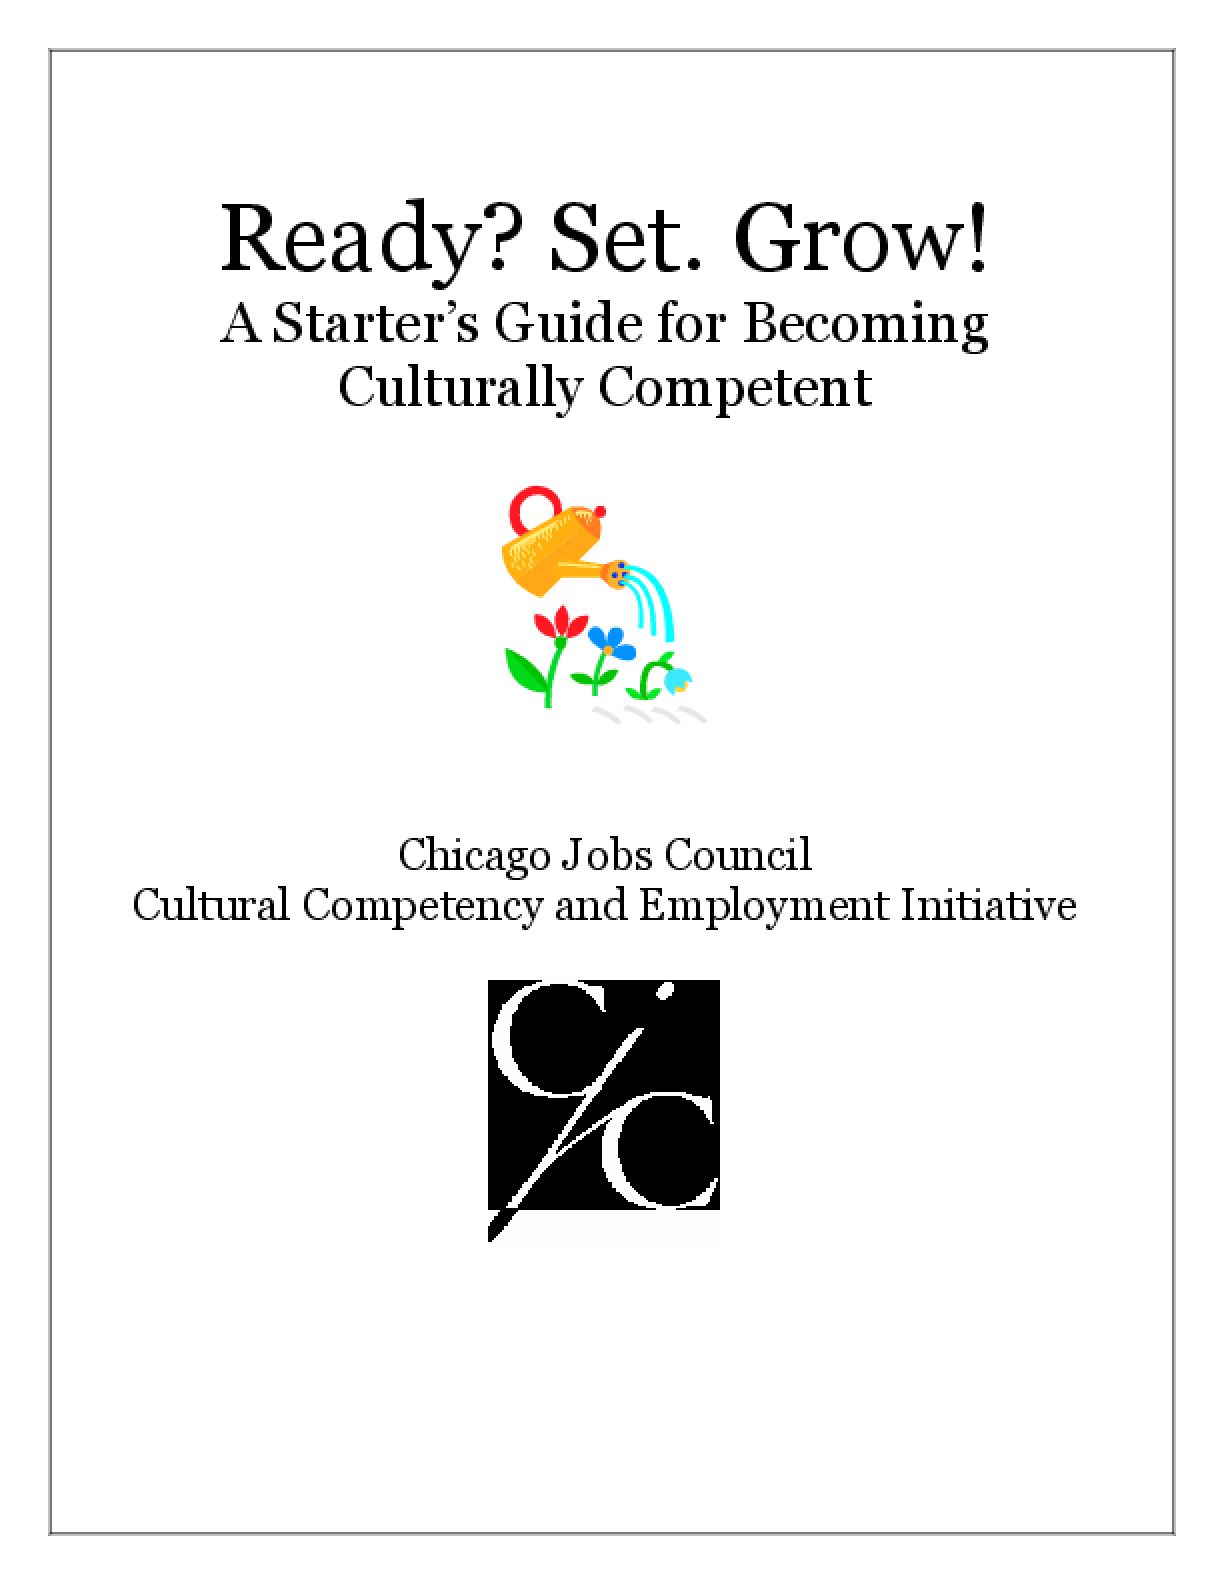 Ready? Set. Grow! A Starter's Guide for Becoming Culturally Competent